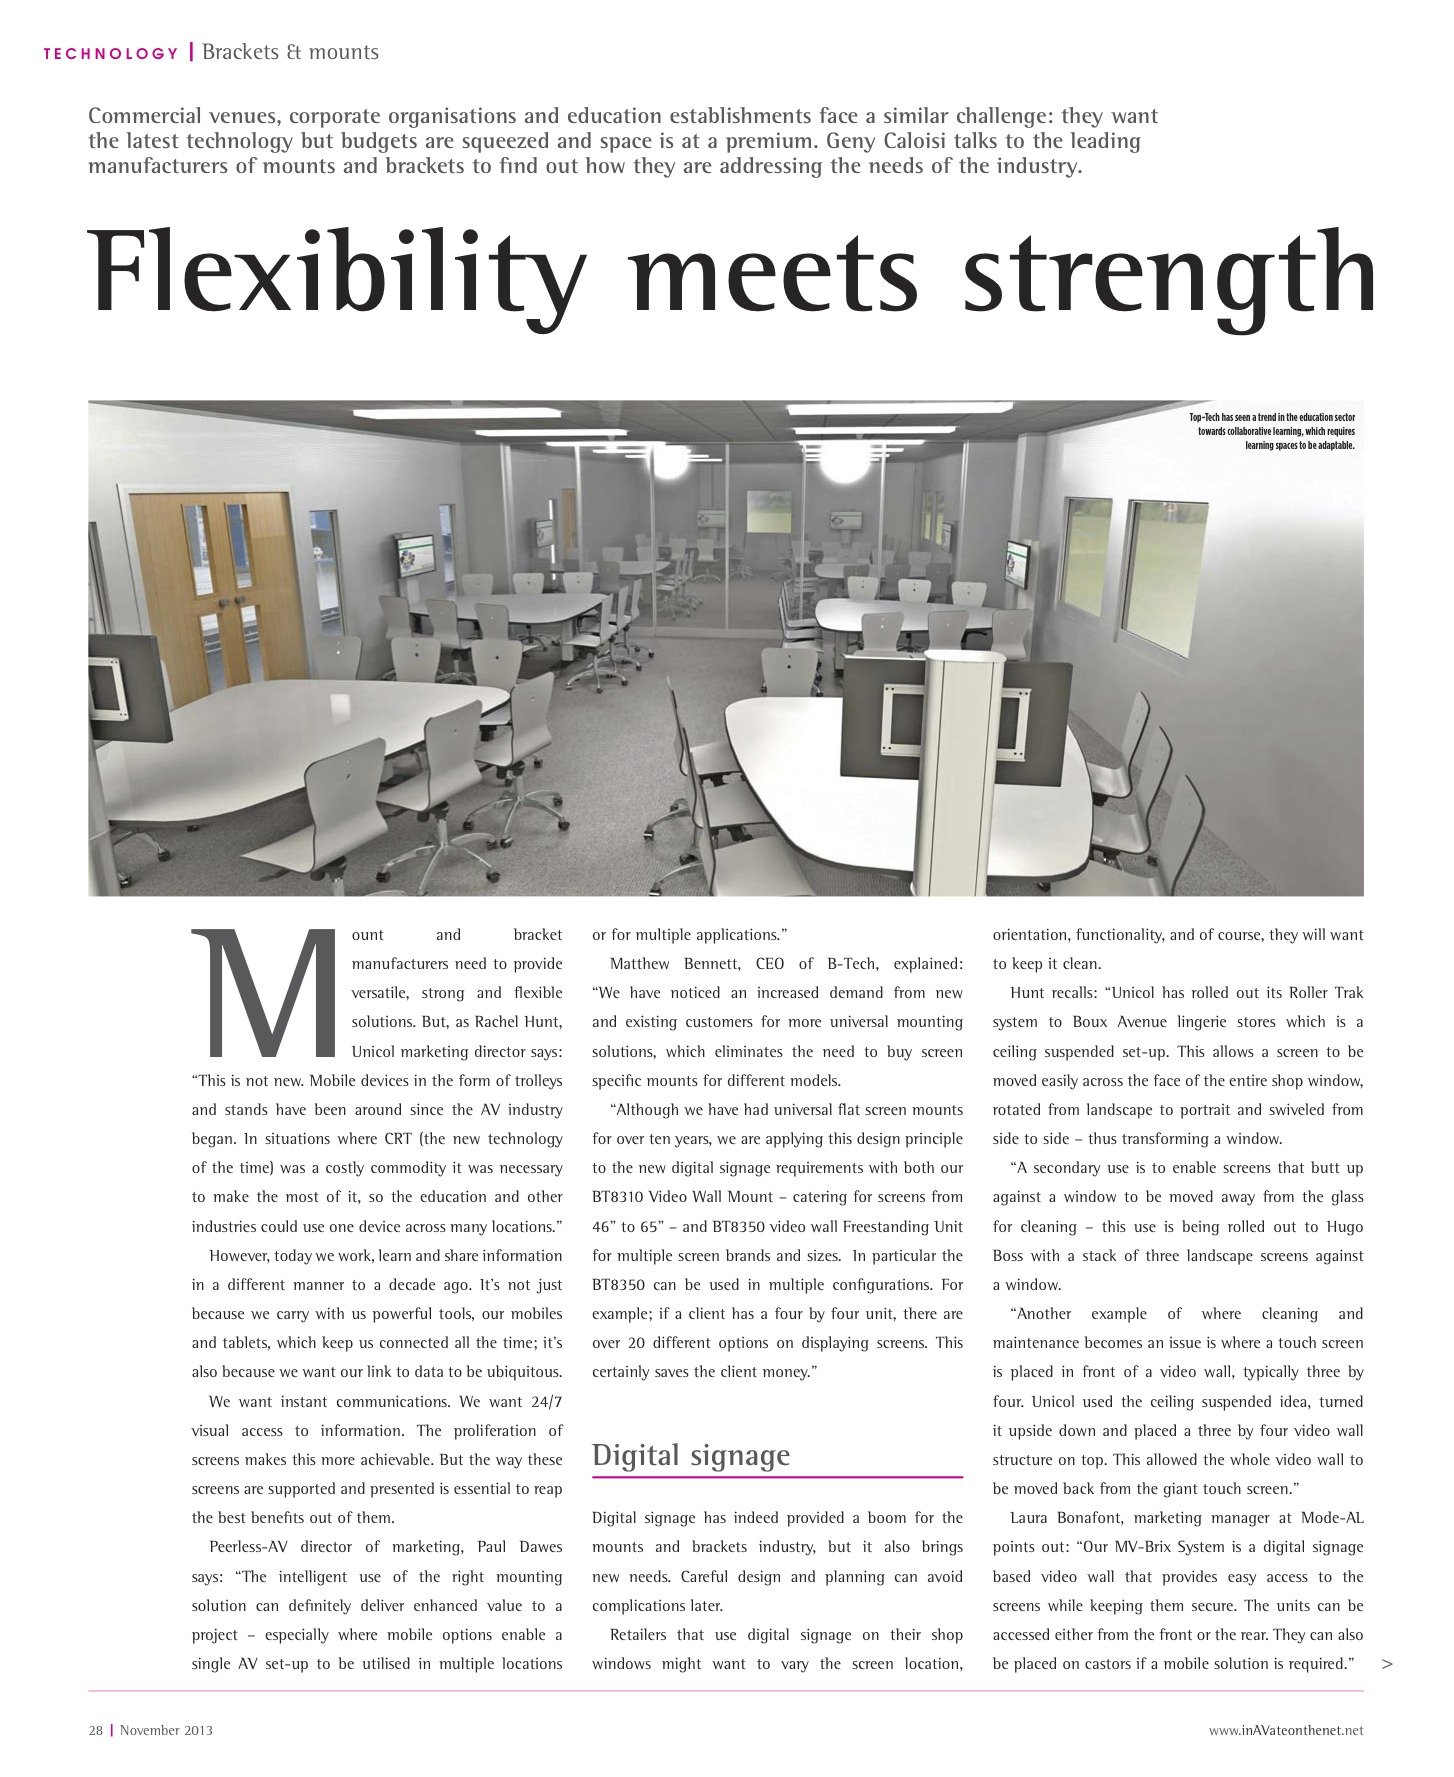 Flexibility meets strength - Geny Caloisi